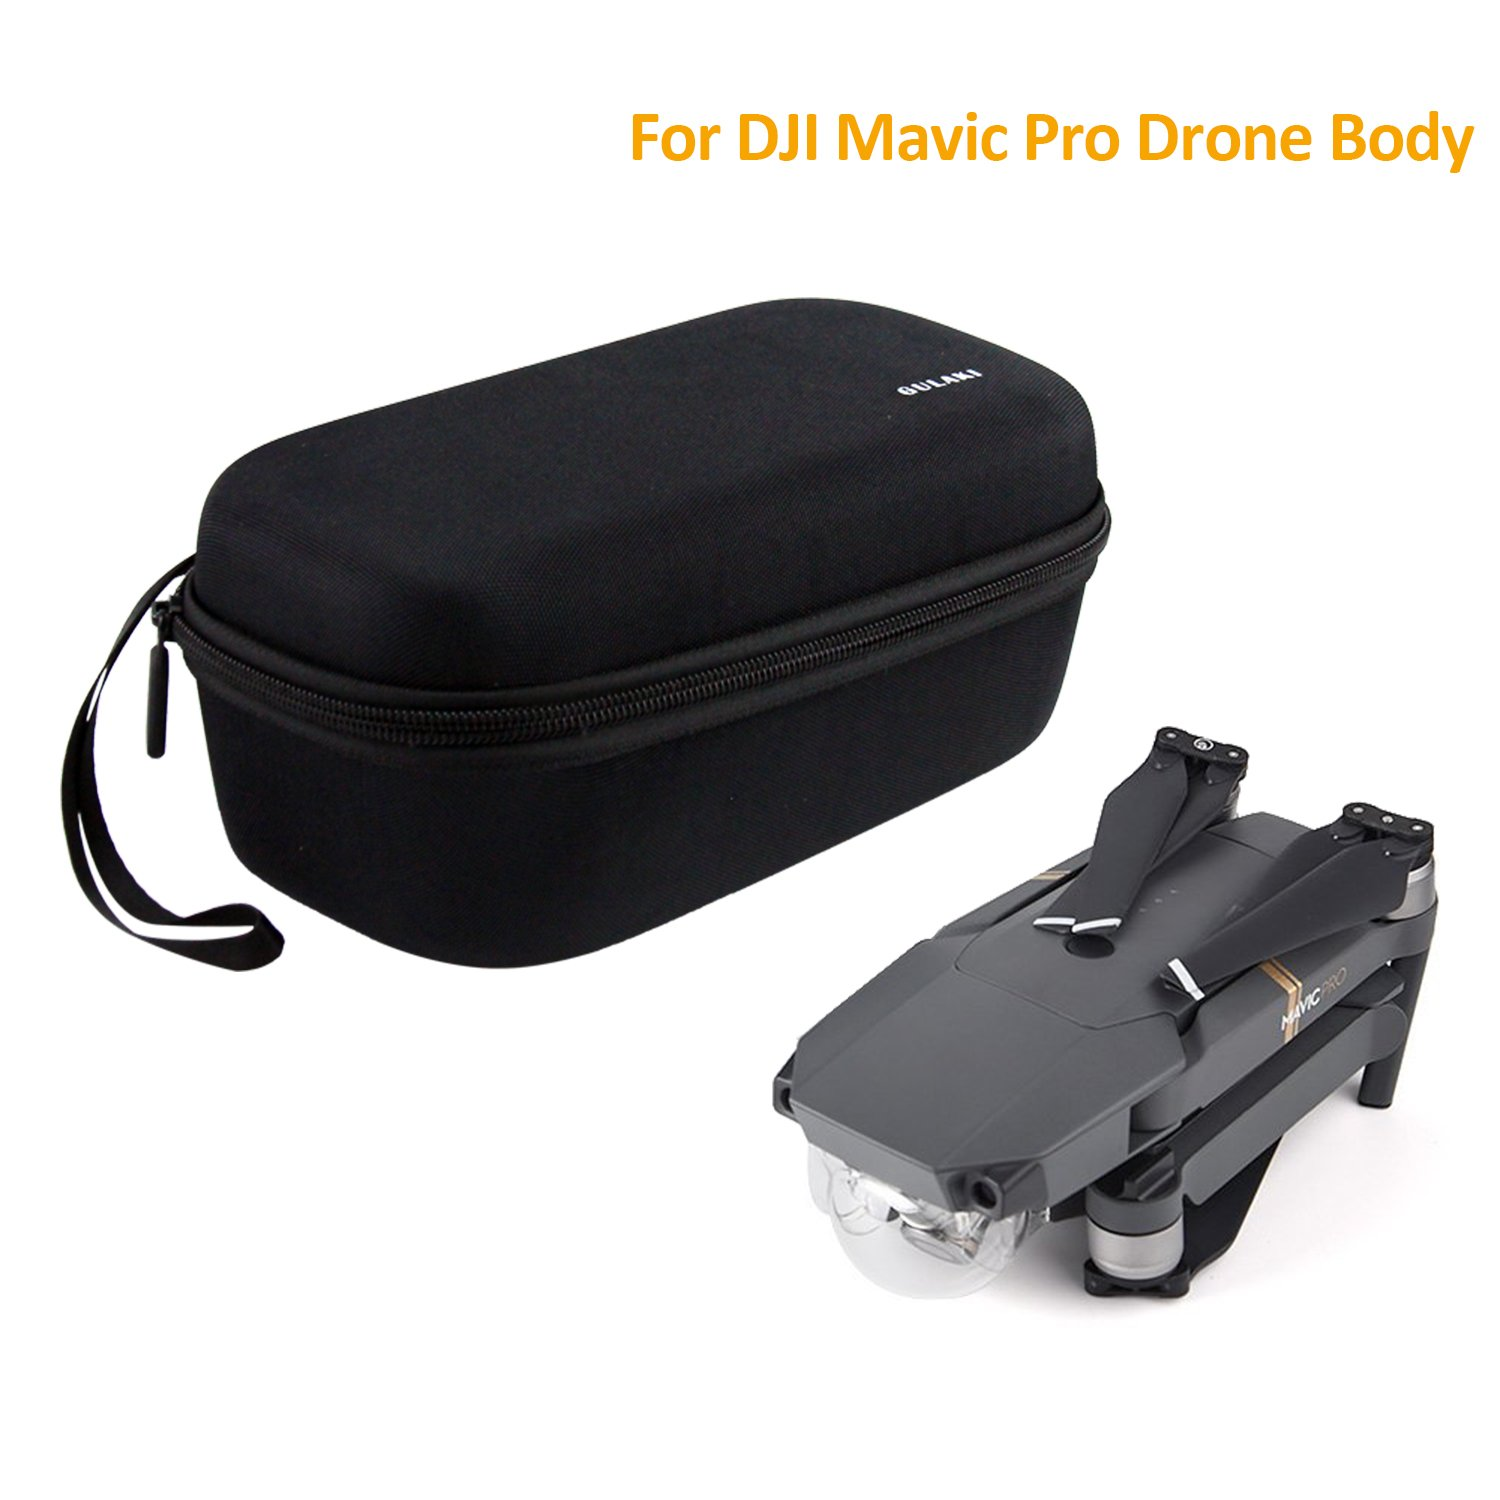 3 Pcs EVA Hardshell Carrying Case Sets for DJI Mavic Pro Drone Body and Remote Controller Transmitter with Battery Carrying Case (DJI Mavic Not Included)